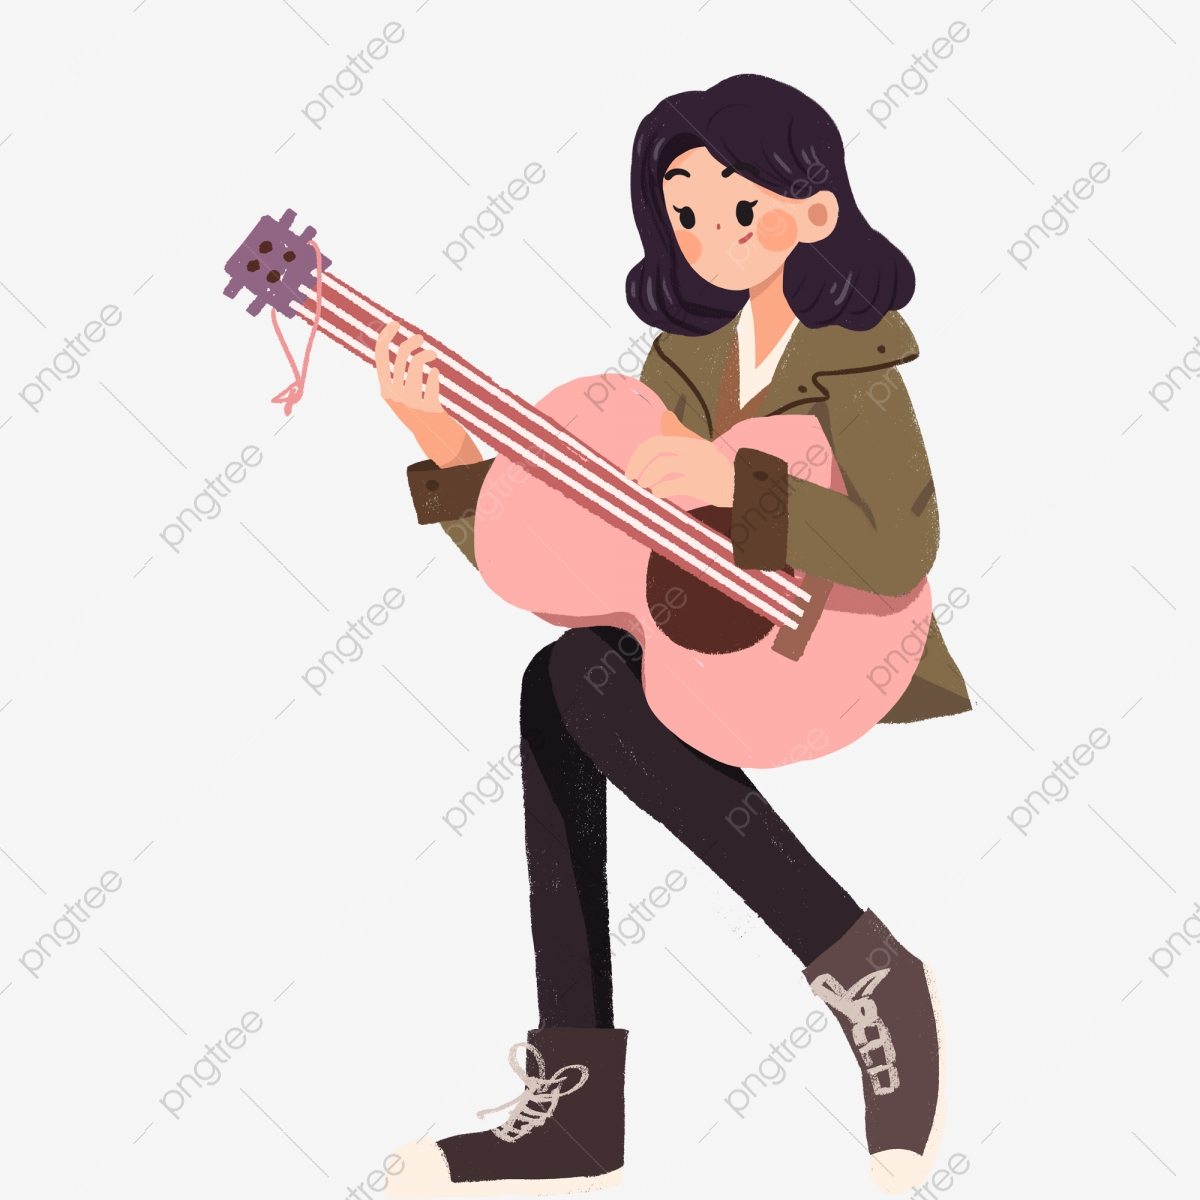 Cartoon Illustration Of Musical Instruments Objects Clip Art.. Royalty Free  Cliparts, Vectors, And Stock Illustration. Image 126166866.